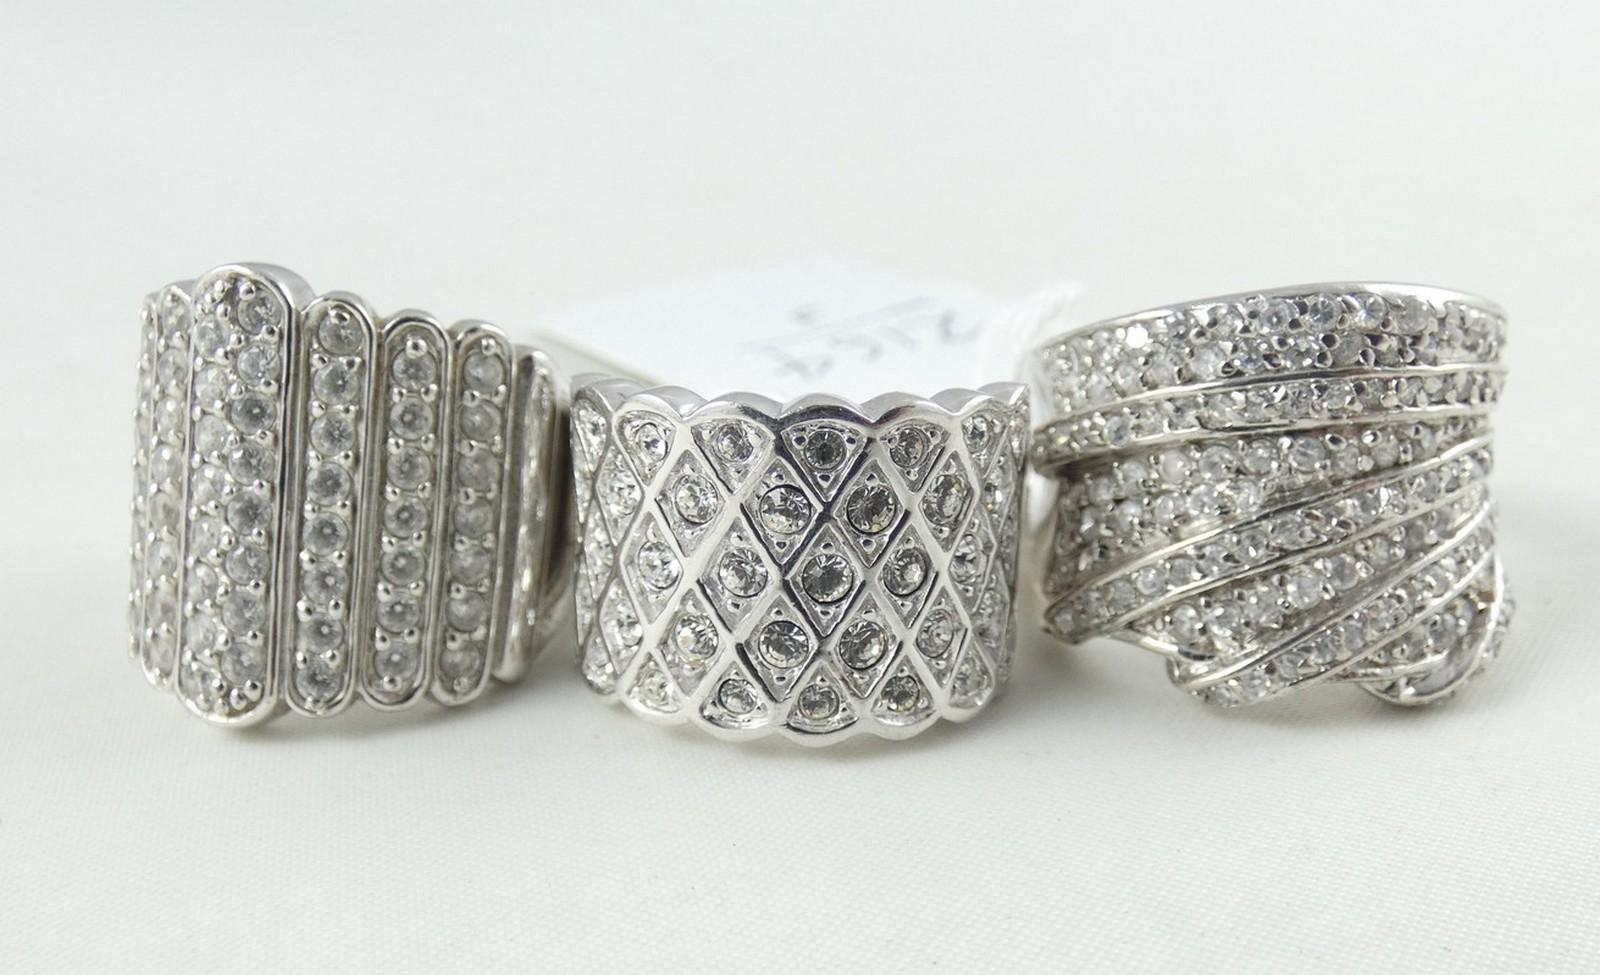 THREE COCKTAIL RINGS